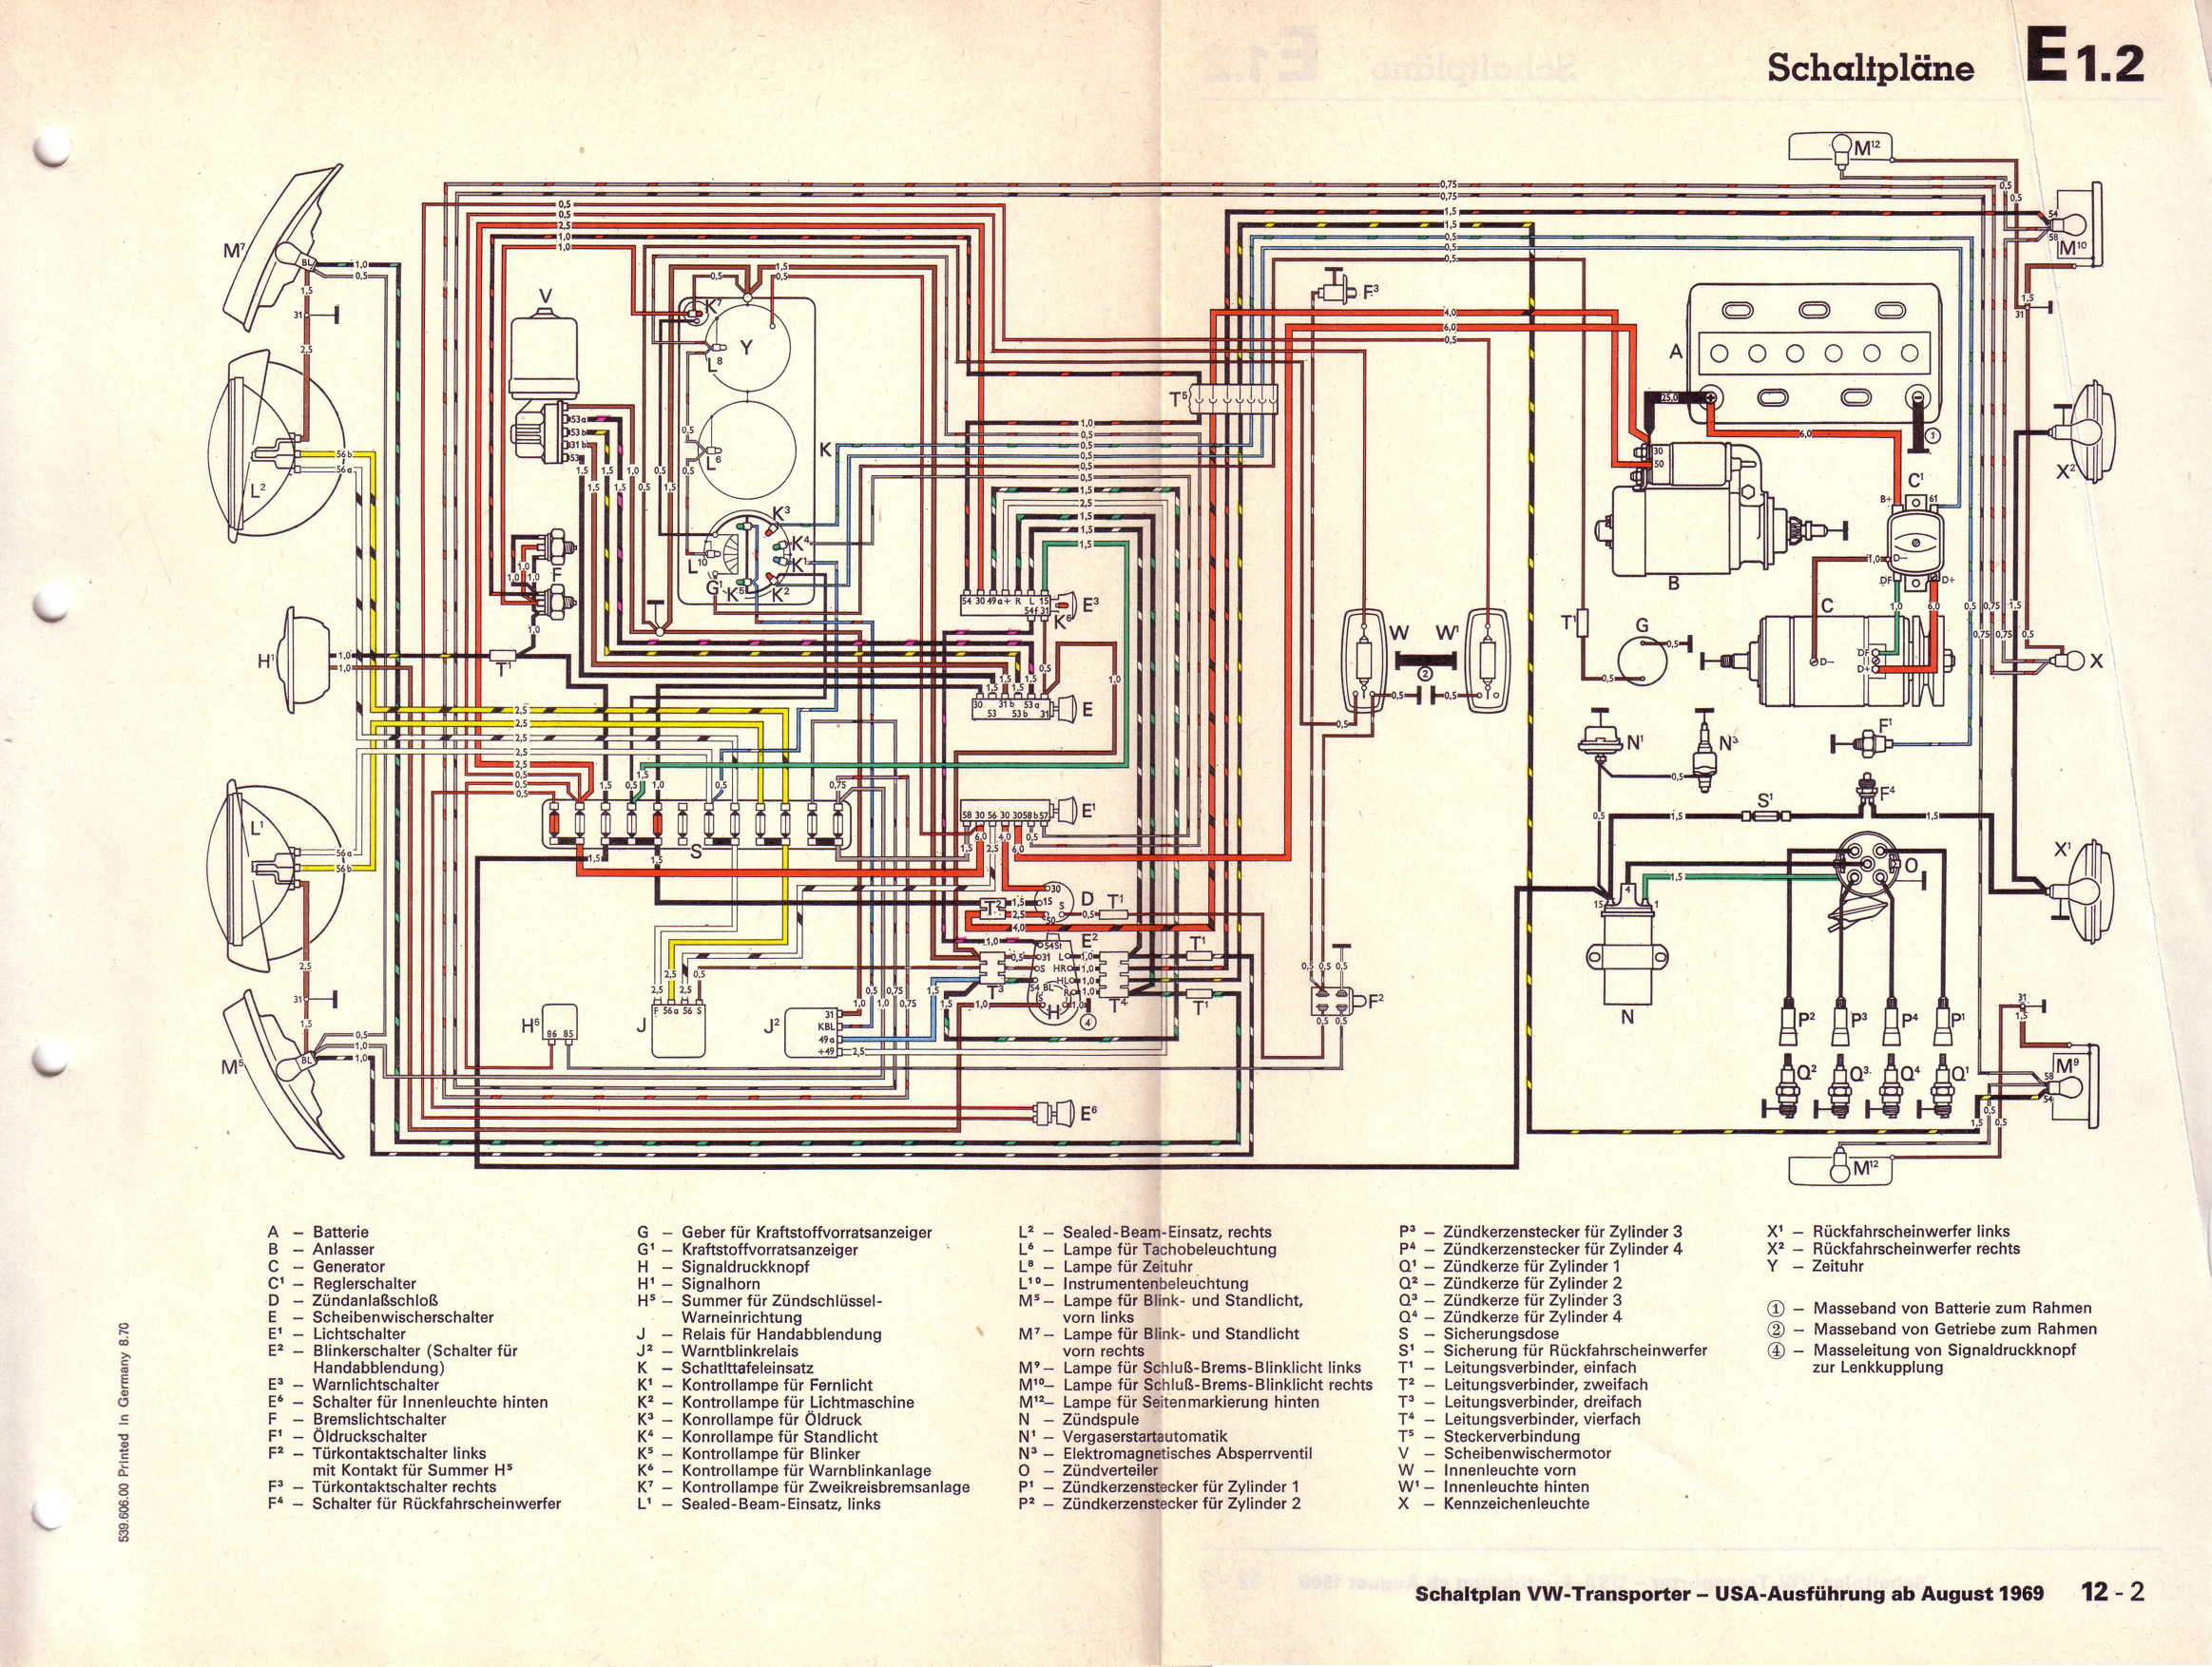 Wiring Diagram For 1975 Vw Beetle : Volkswagen beetle engine wiring diagram autos post